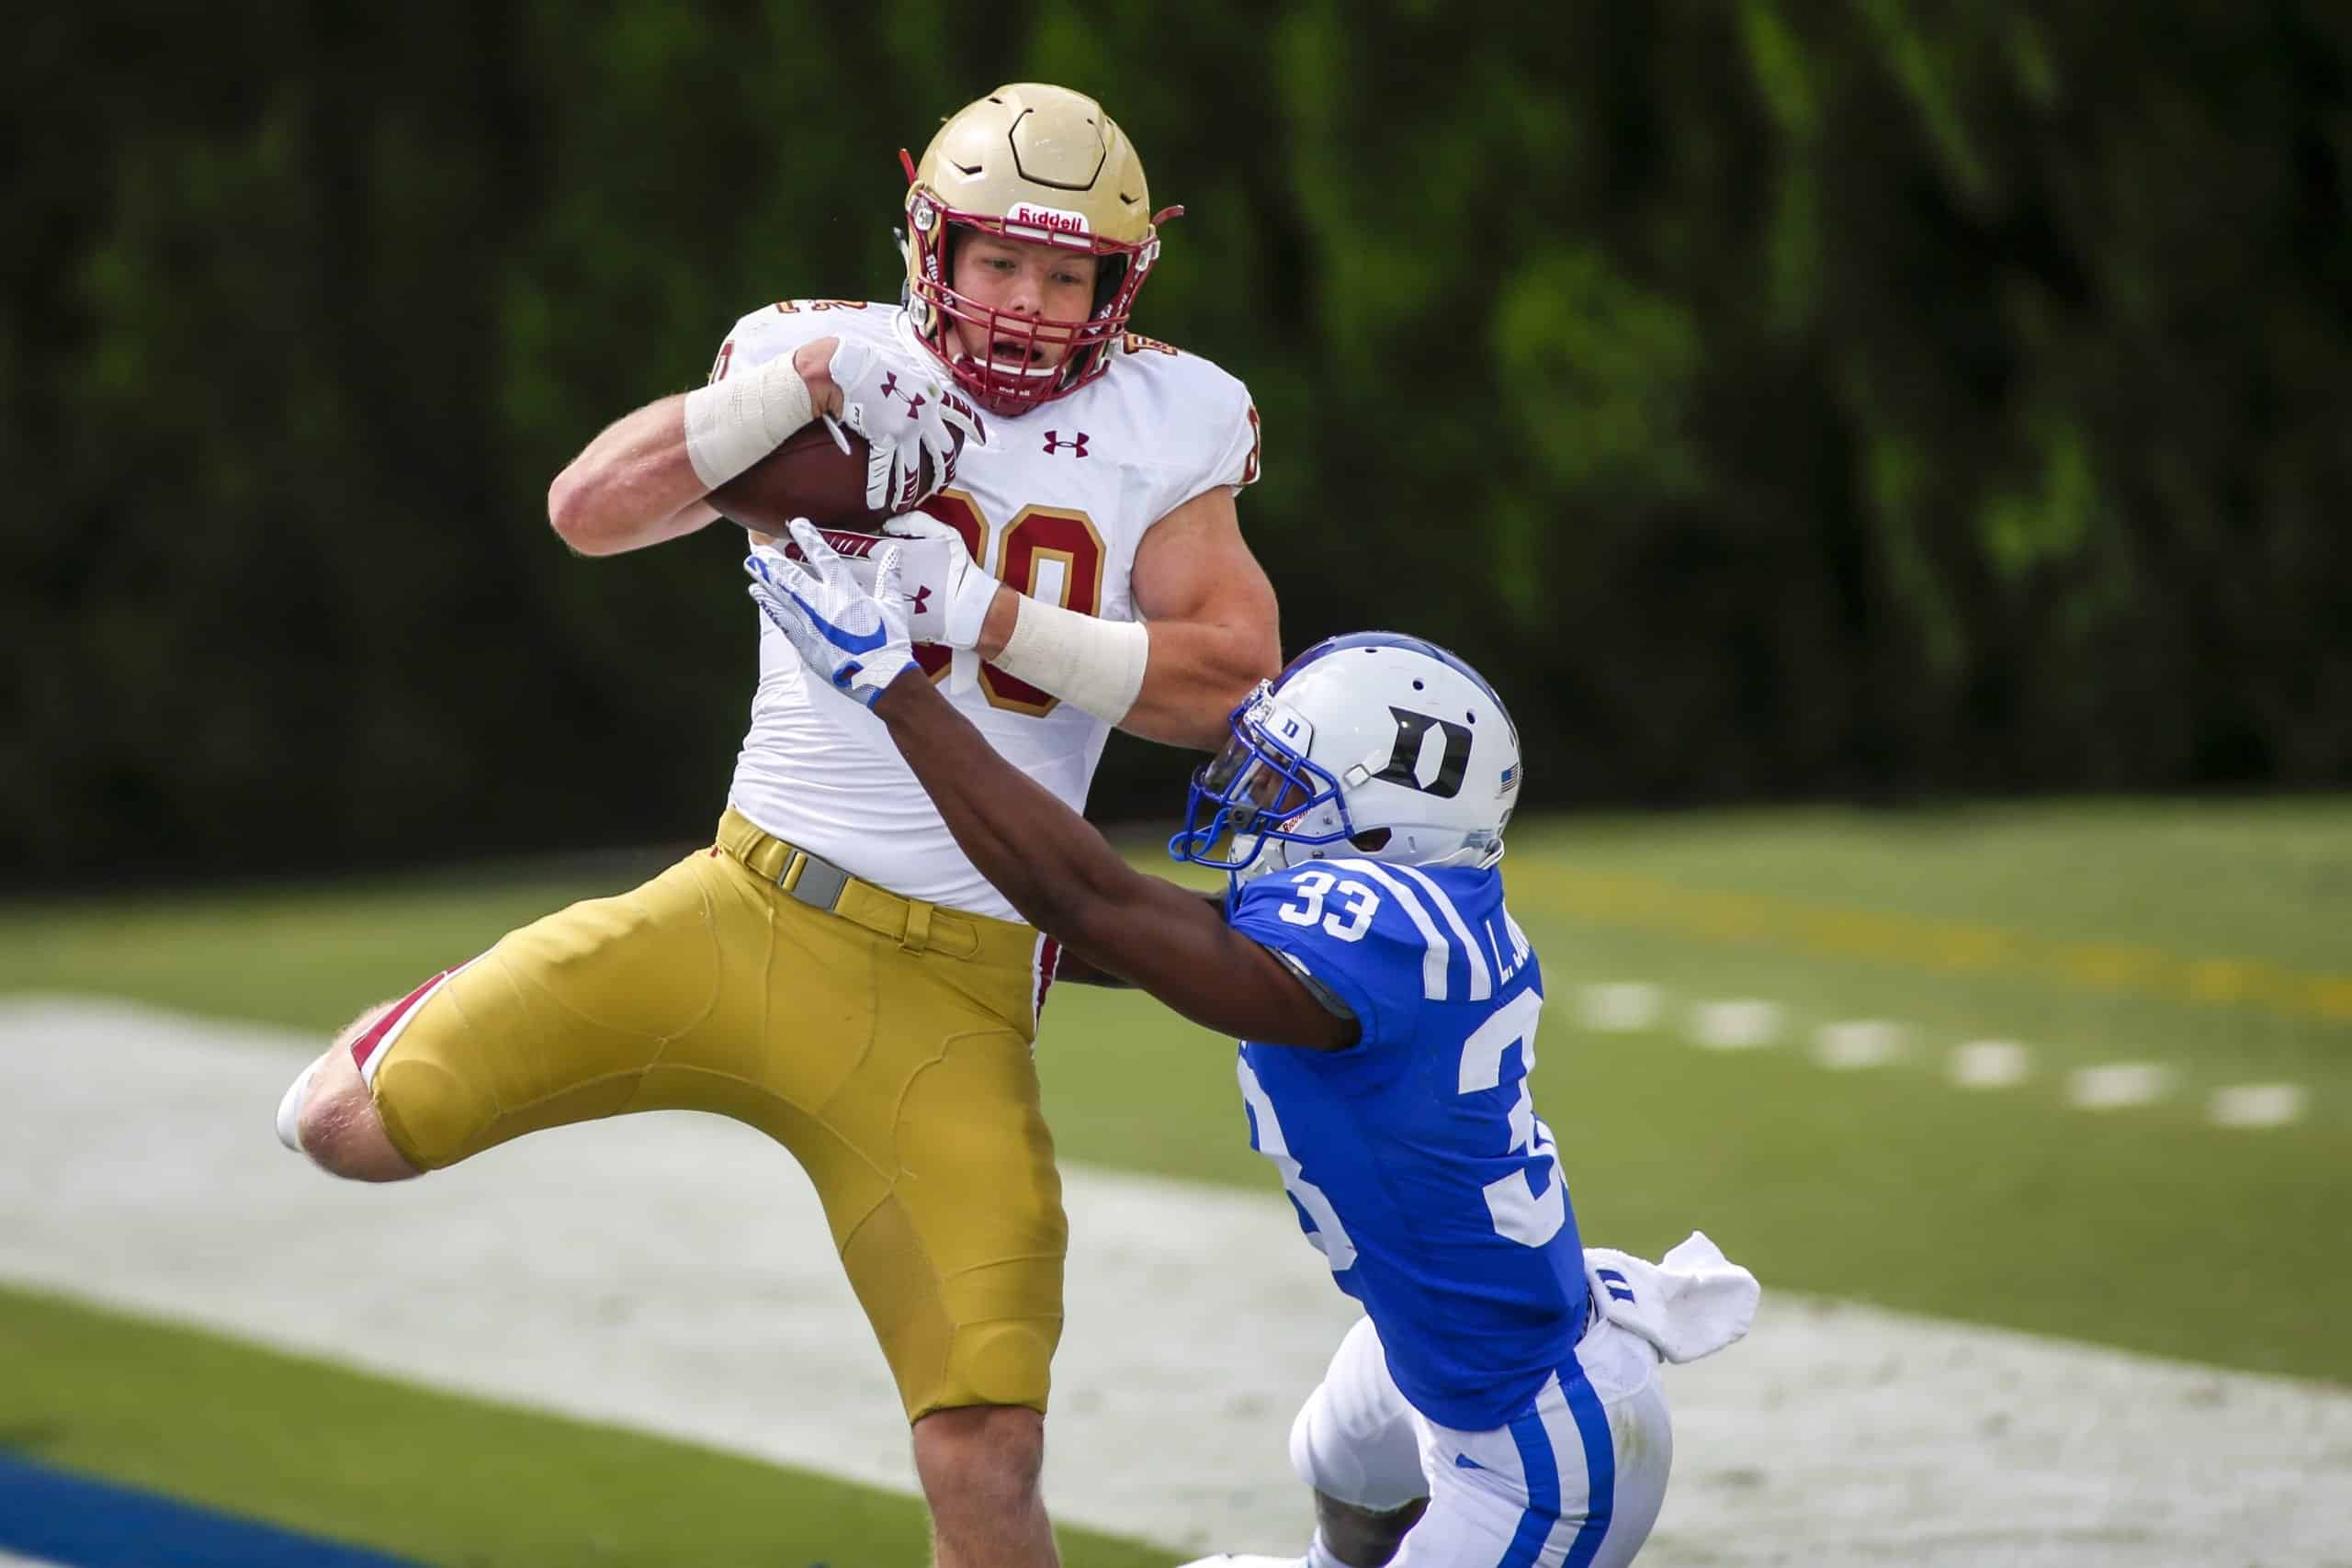 Boston College TE Hunter Long is a Top 5 2021 Tight End